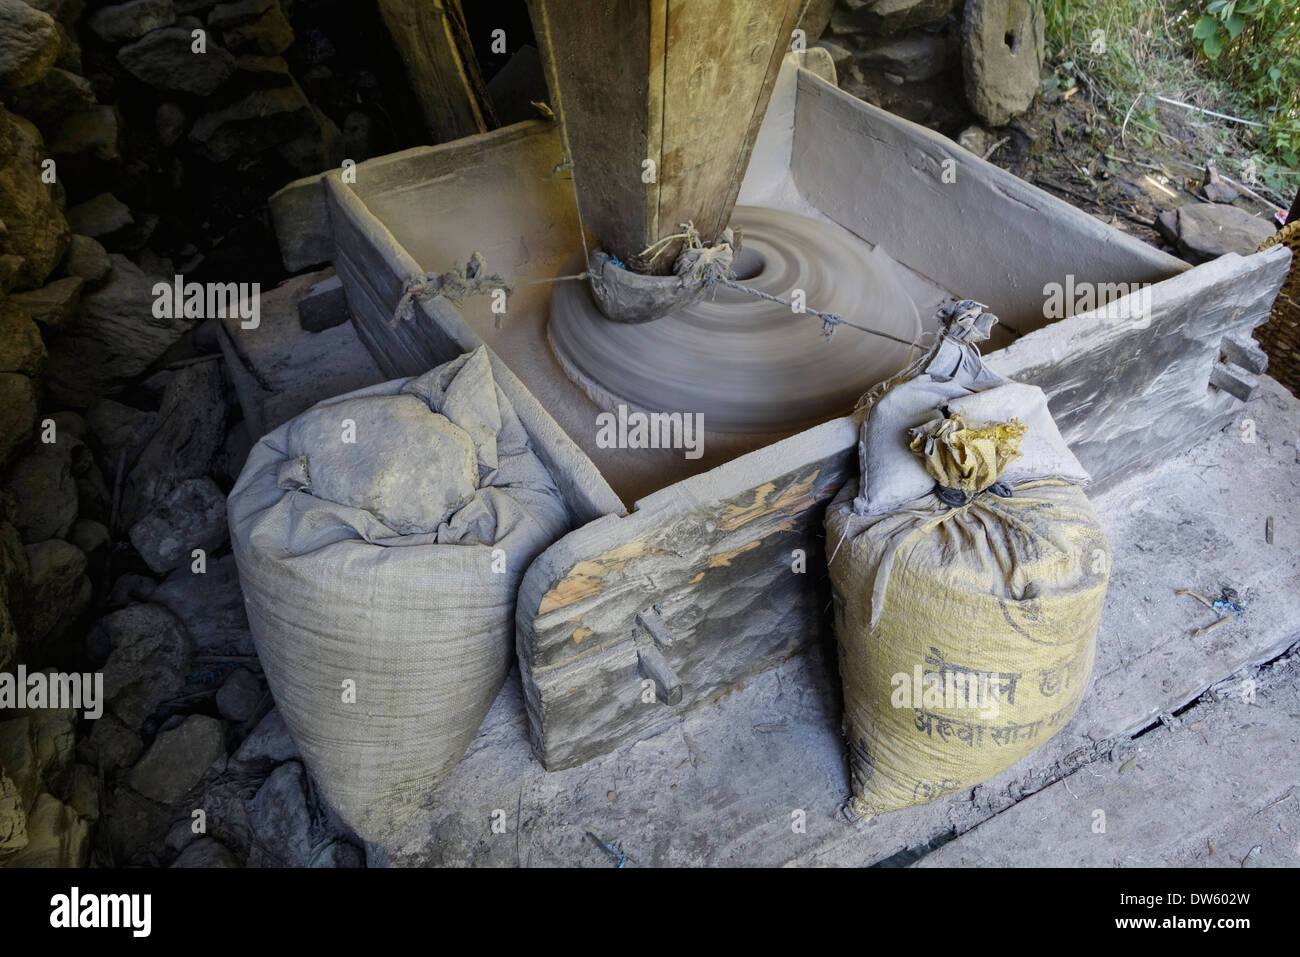 Water powered grinding mill in the Gorkha region of Nepal. - Stock Image